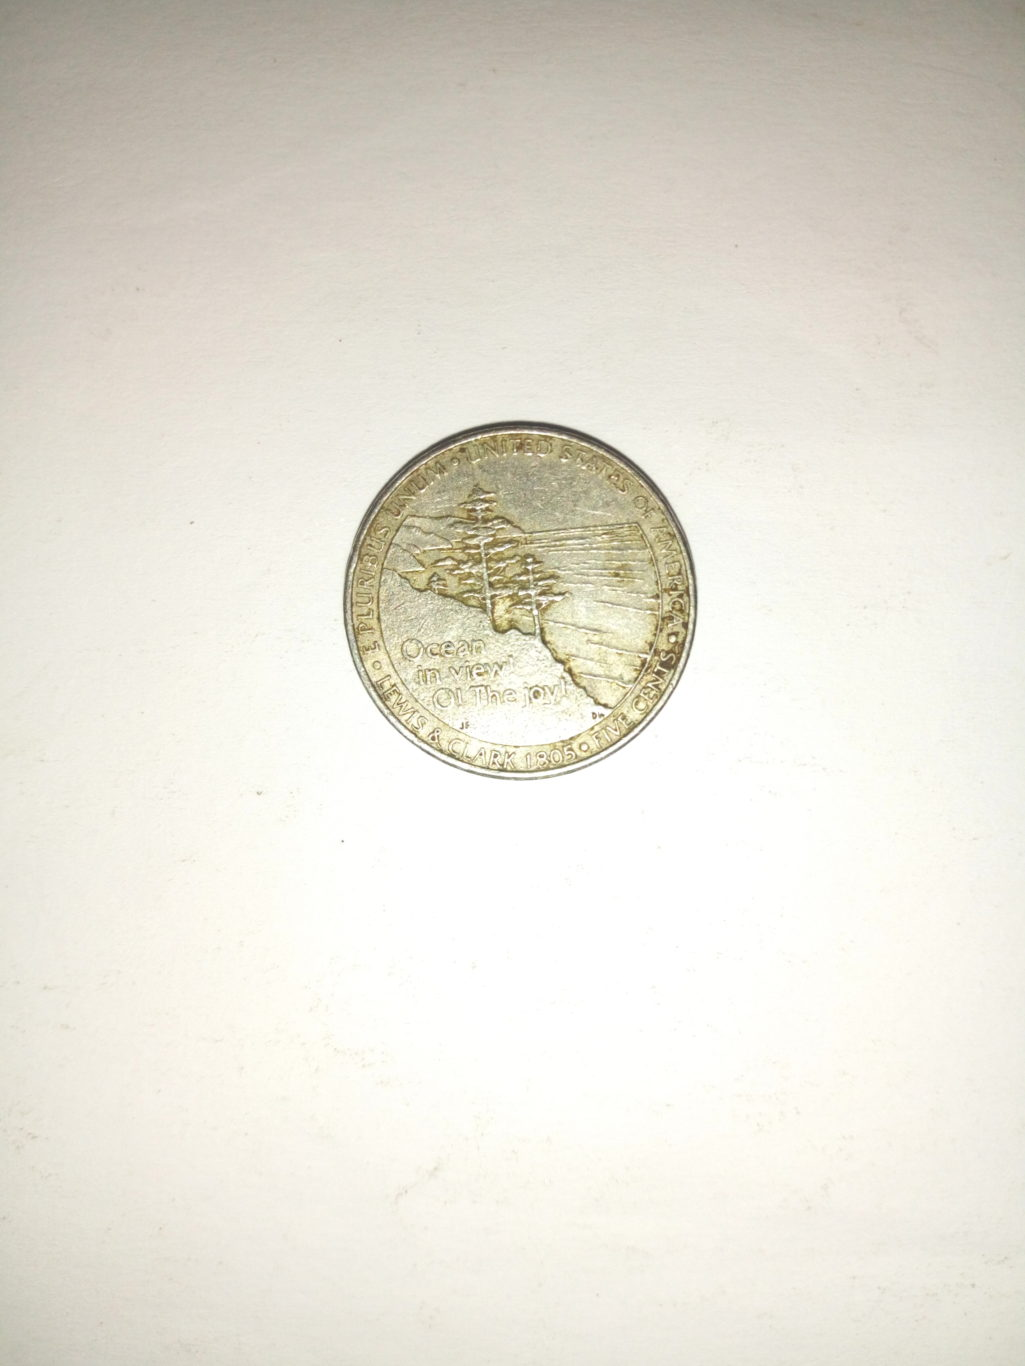 2005_5 cents